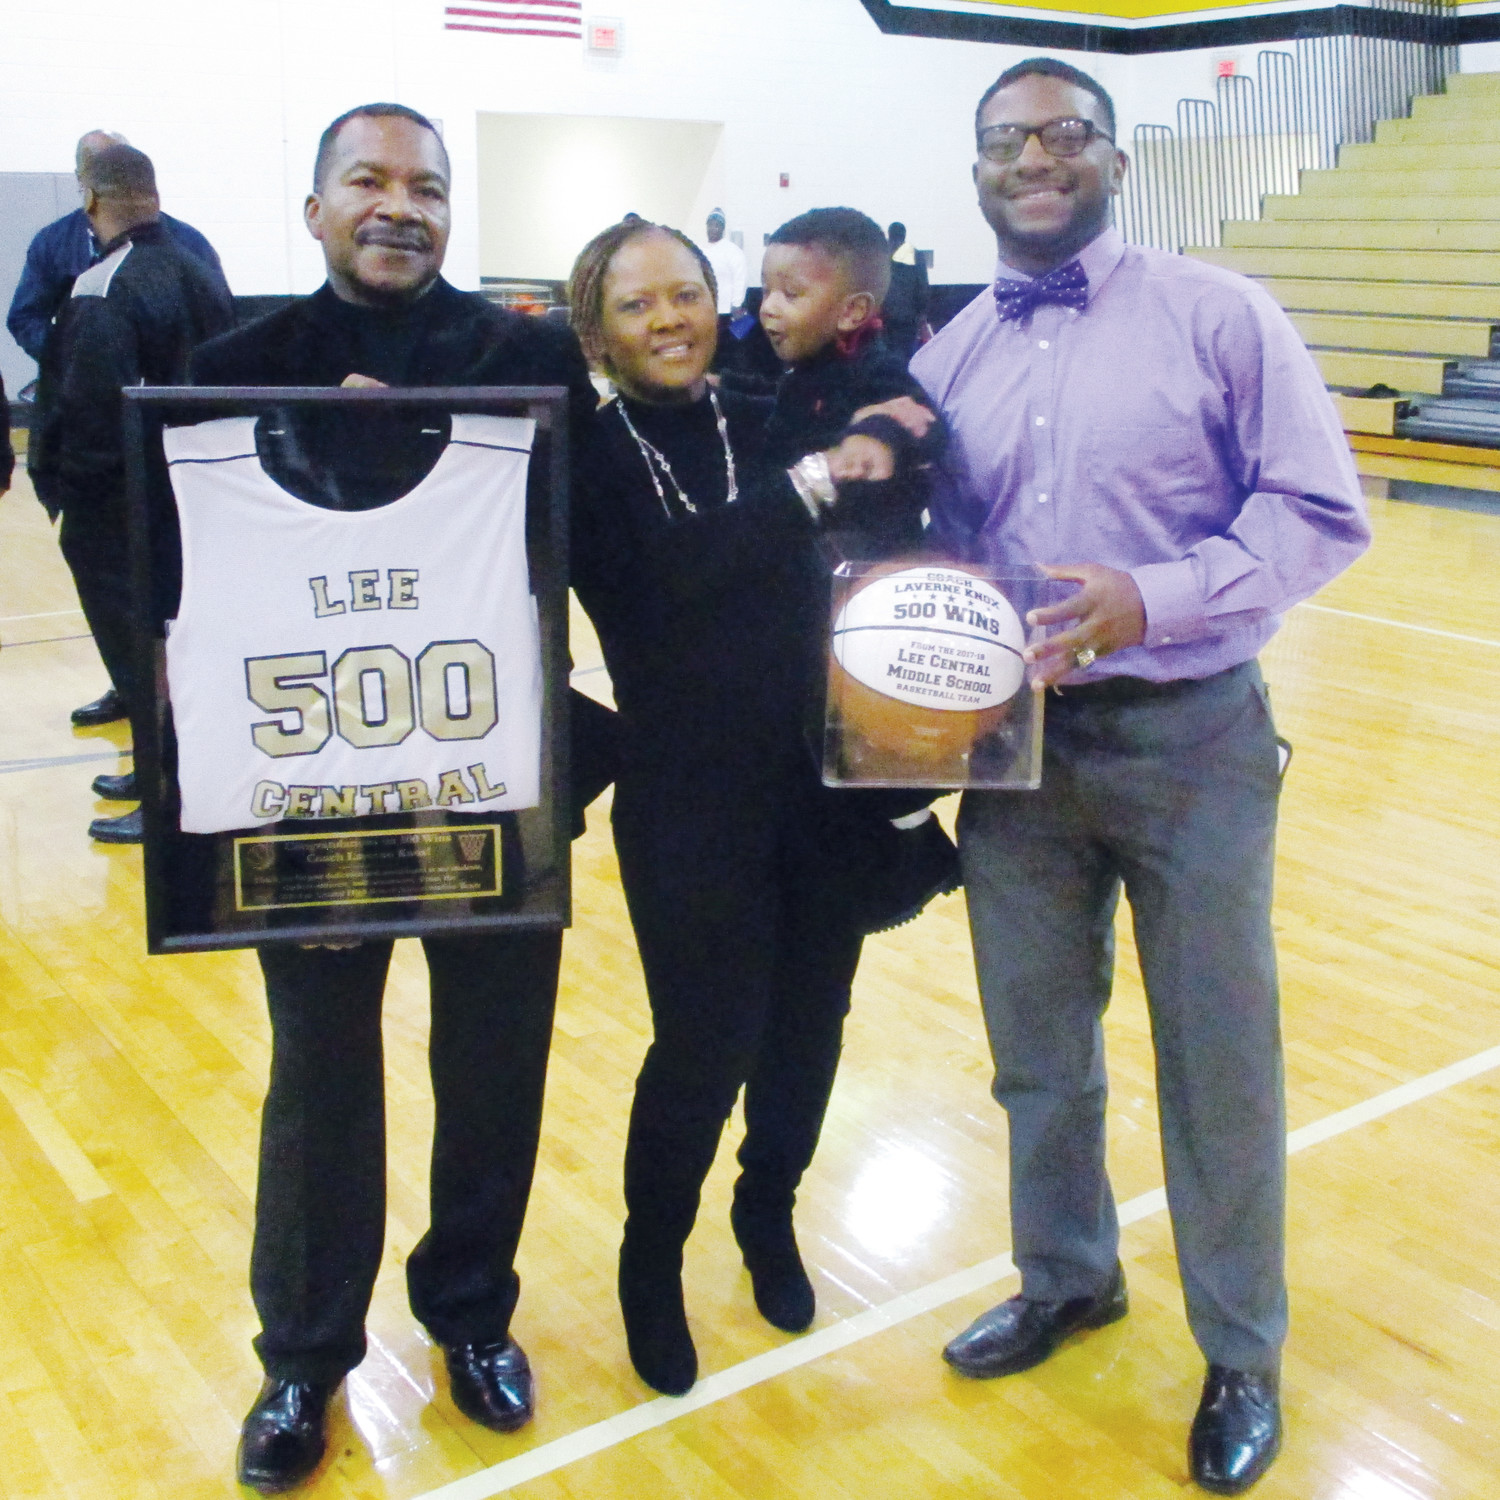 Lee Central High School varsity boys basketball head coach LaVerne Knox, left, holds a framed jersey commemorating his 500th win, a 81-45 pasting of Central on Tuesday at the LCHS gymnasium. Knox is seen at the ceremony at the school celebrating the victory with his wife, Joann, middle, son, Brad, right and a grandson, Braylen, 2. This story has been edited for length. Read the full story at at www.theitem.com.